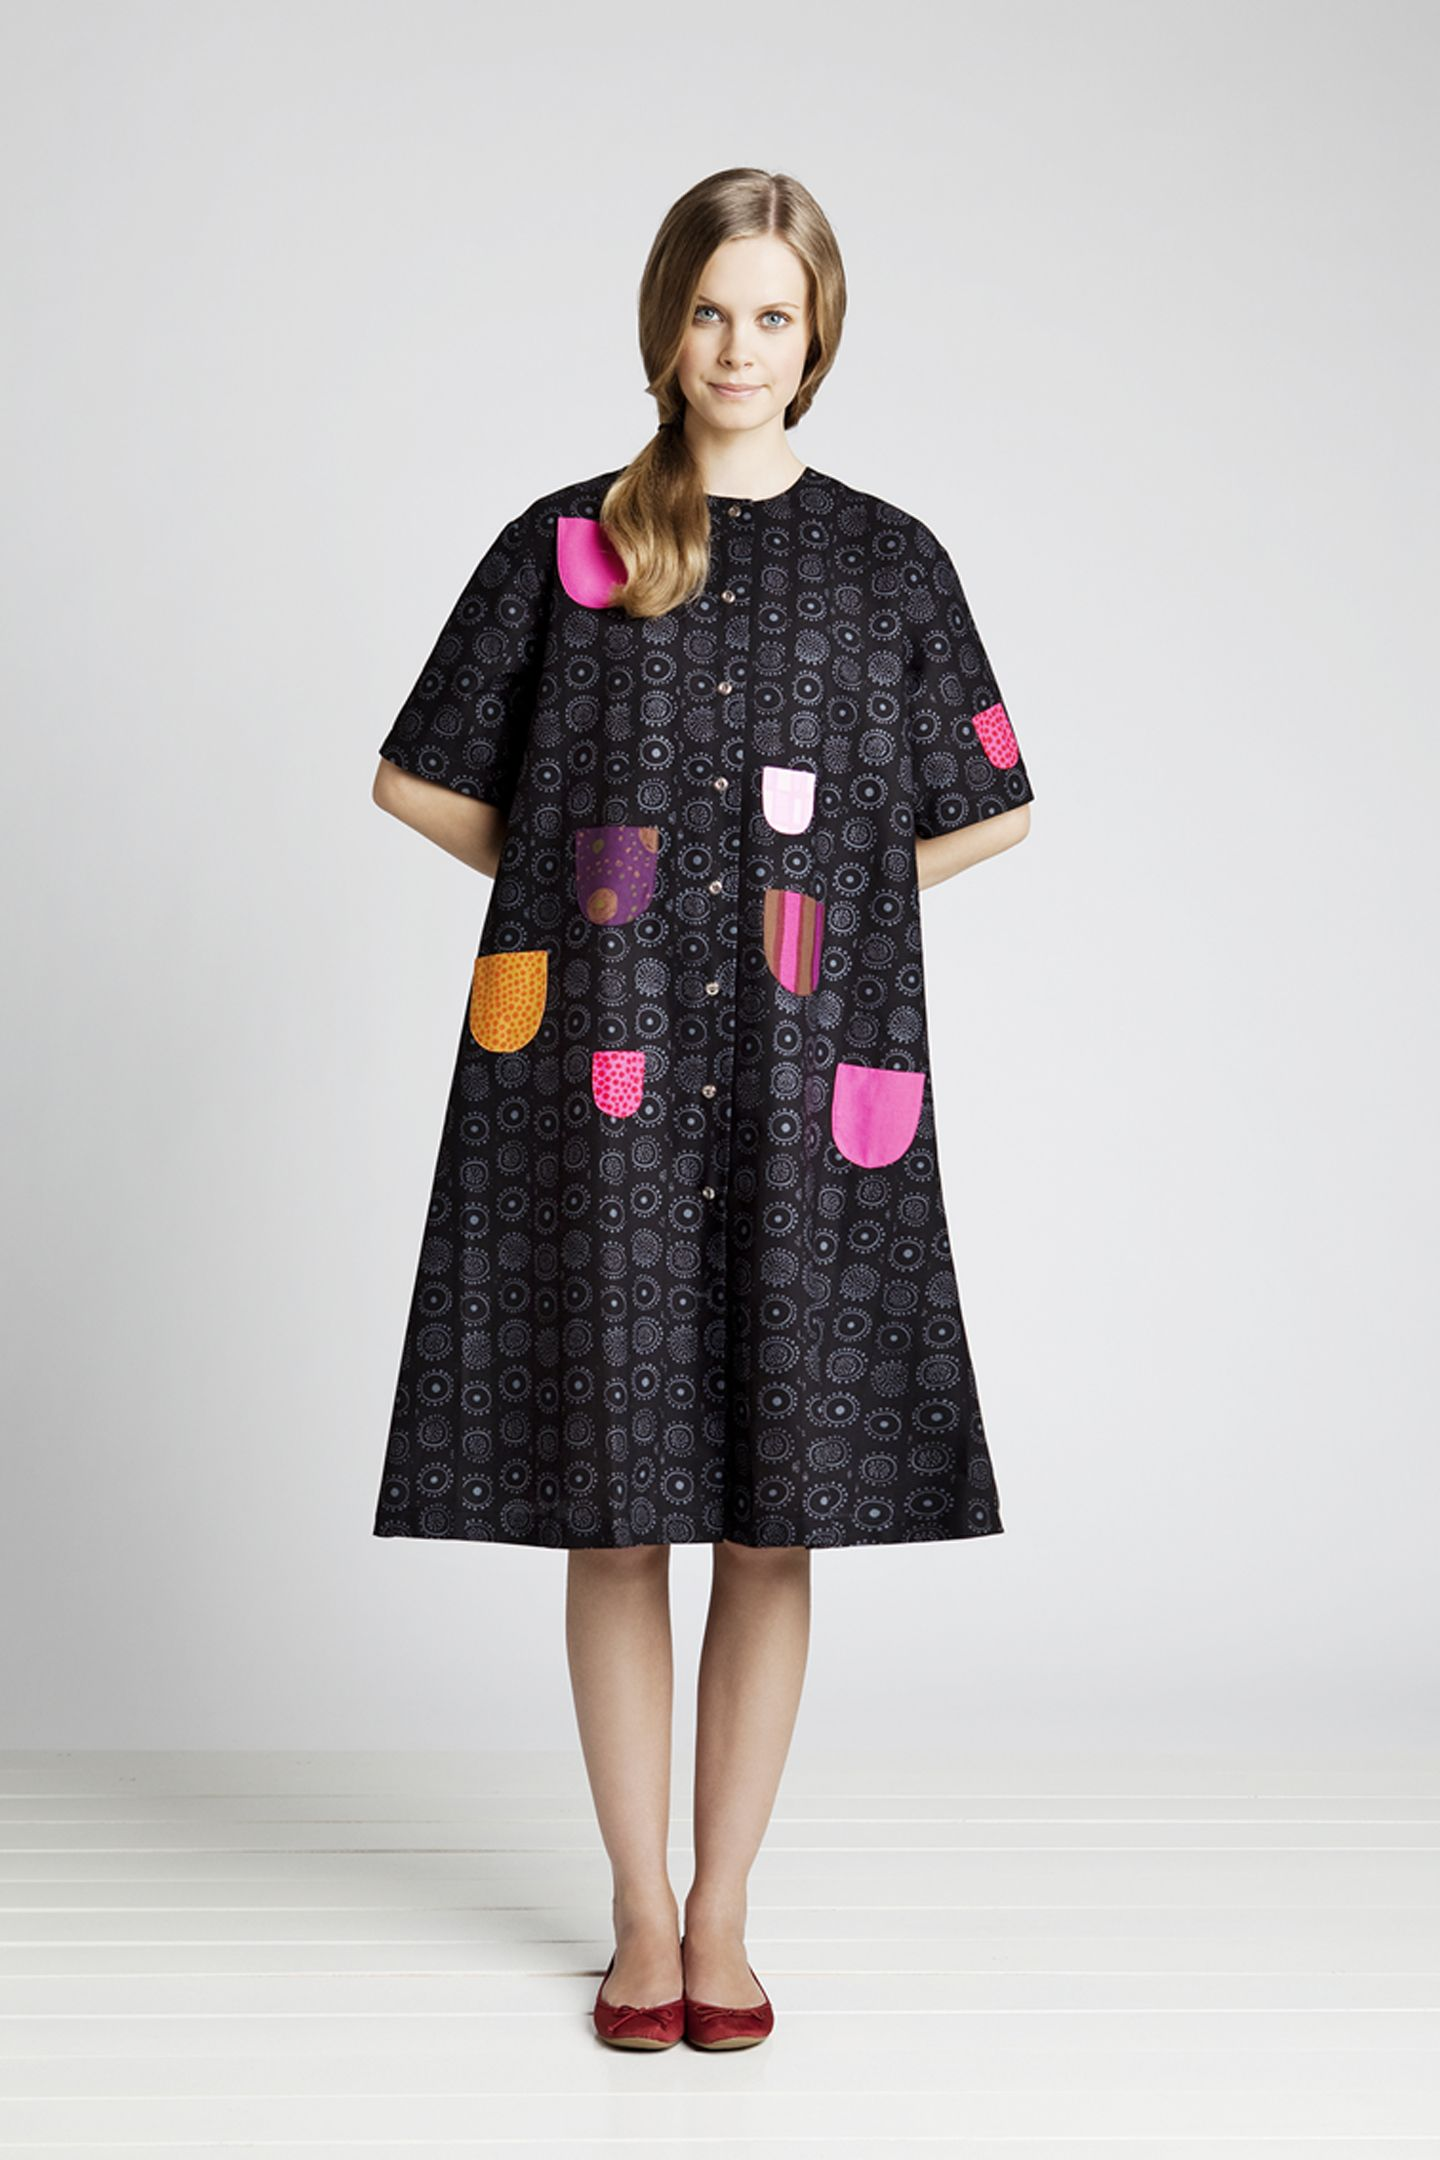 Marimekko Founded by Armi Ratia in , Marimekko is a play on words - an anagram of Armi's first name and